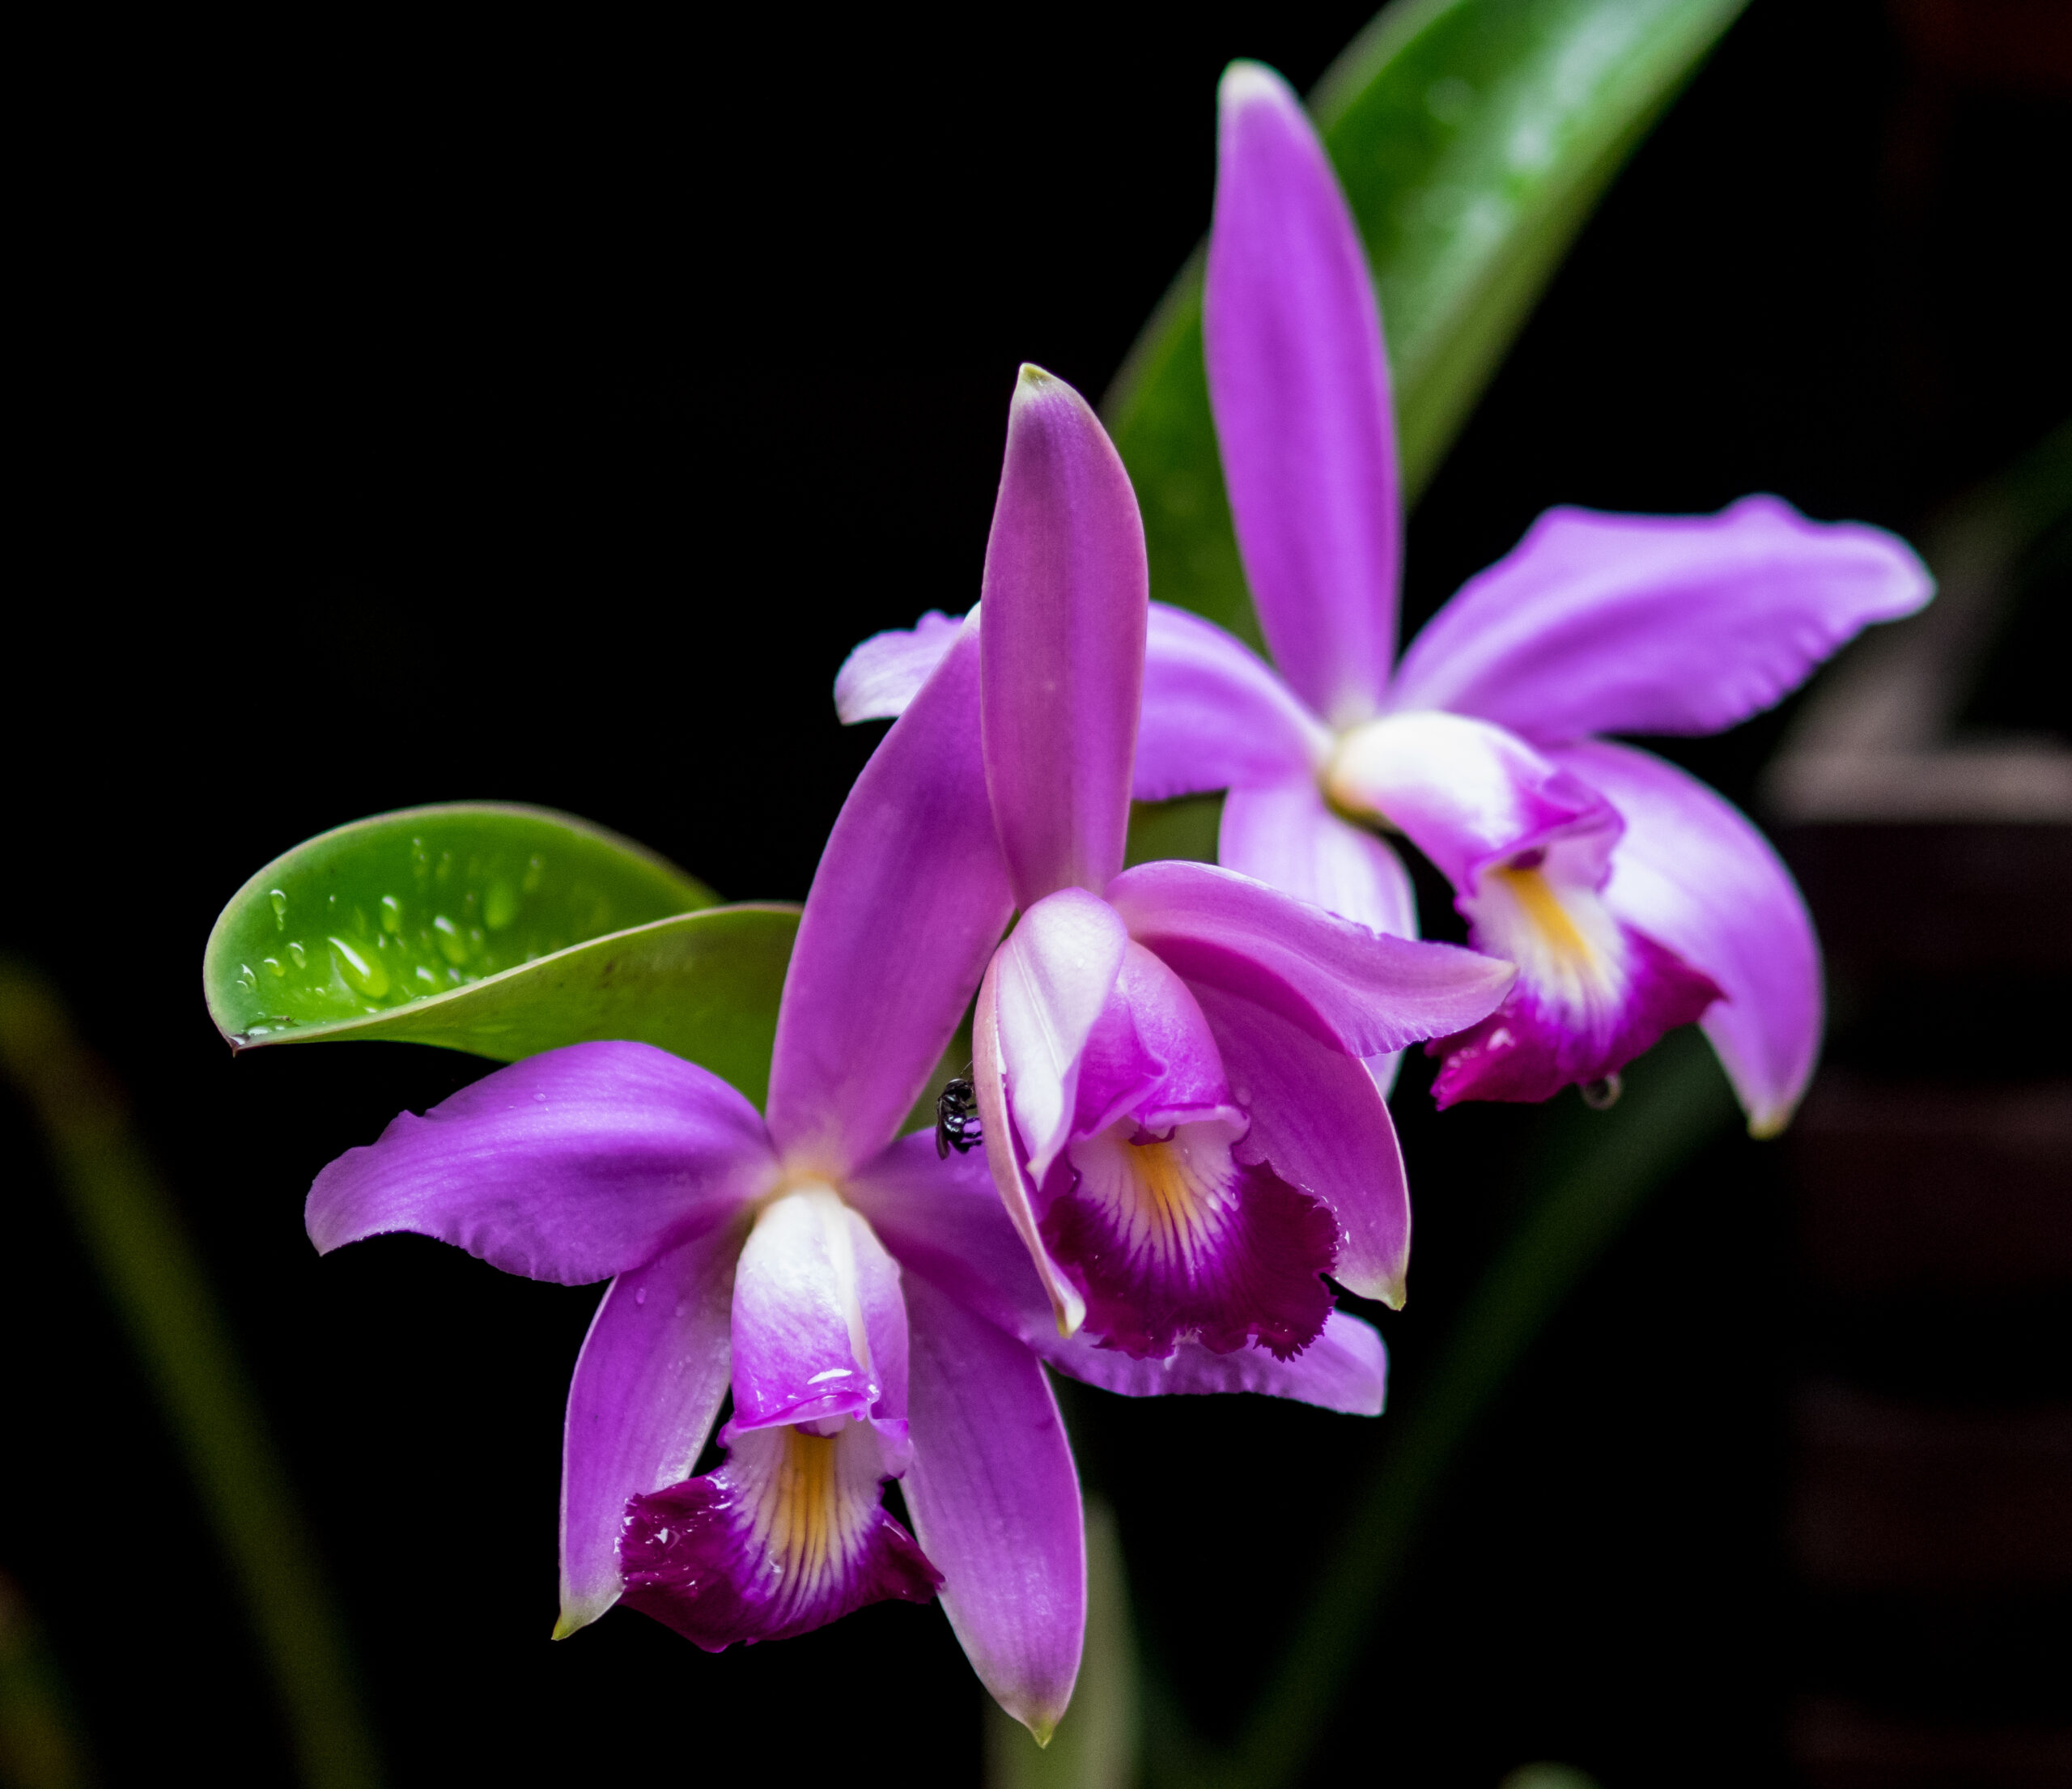 The purple coloured Cattleya eldorado is typically found in the Rio Negro basin, mainly within the Brazilian state of Amazonas. It is native of the Amazon region, usually flowers once a year, once the rainy season starts.